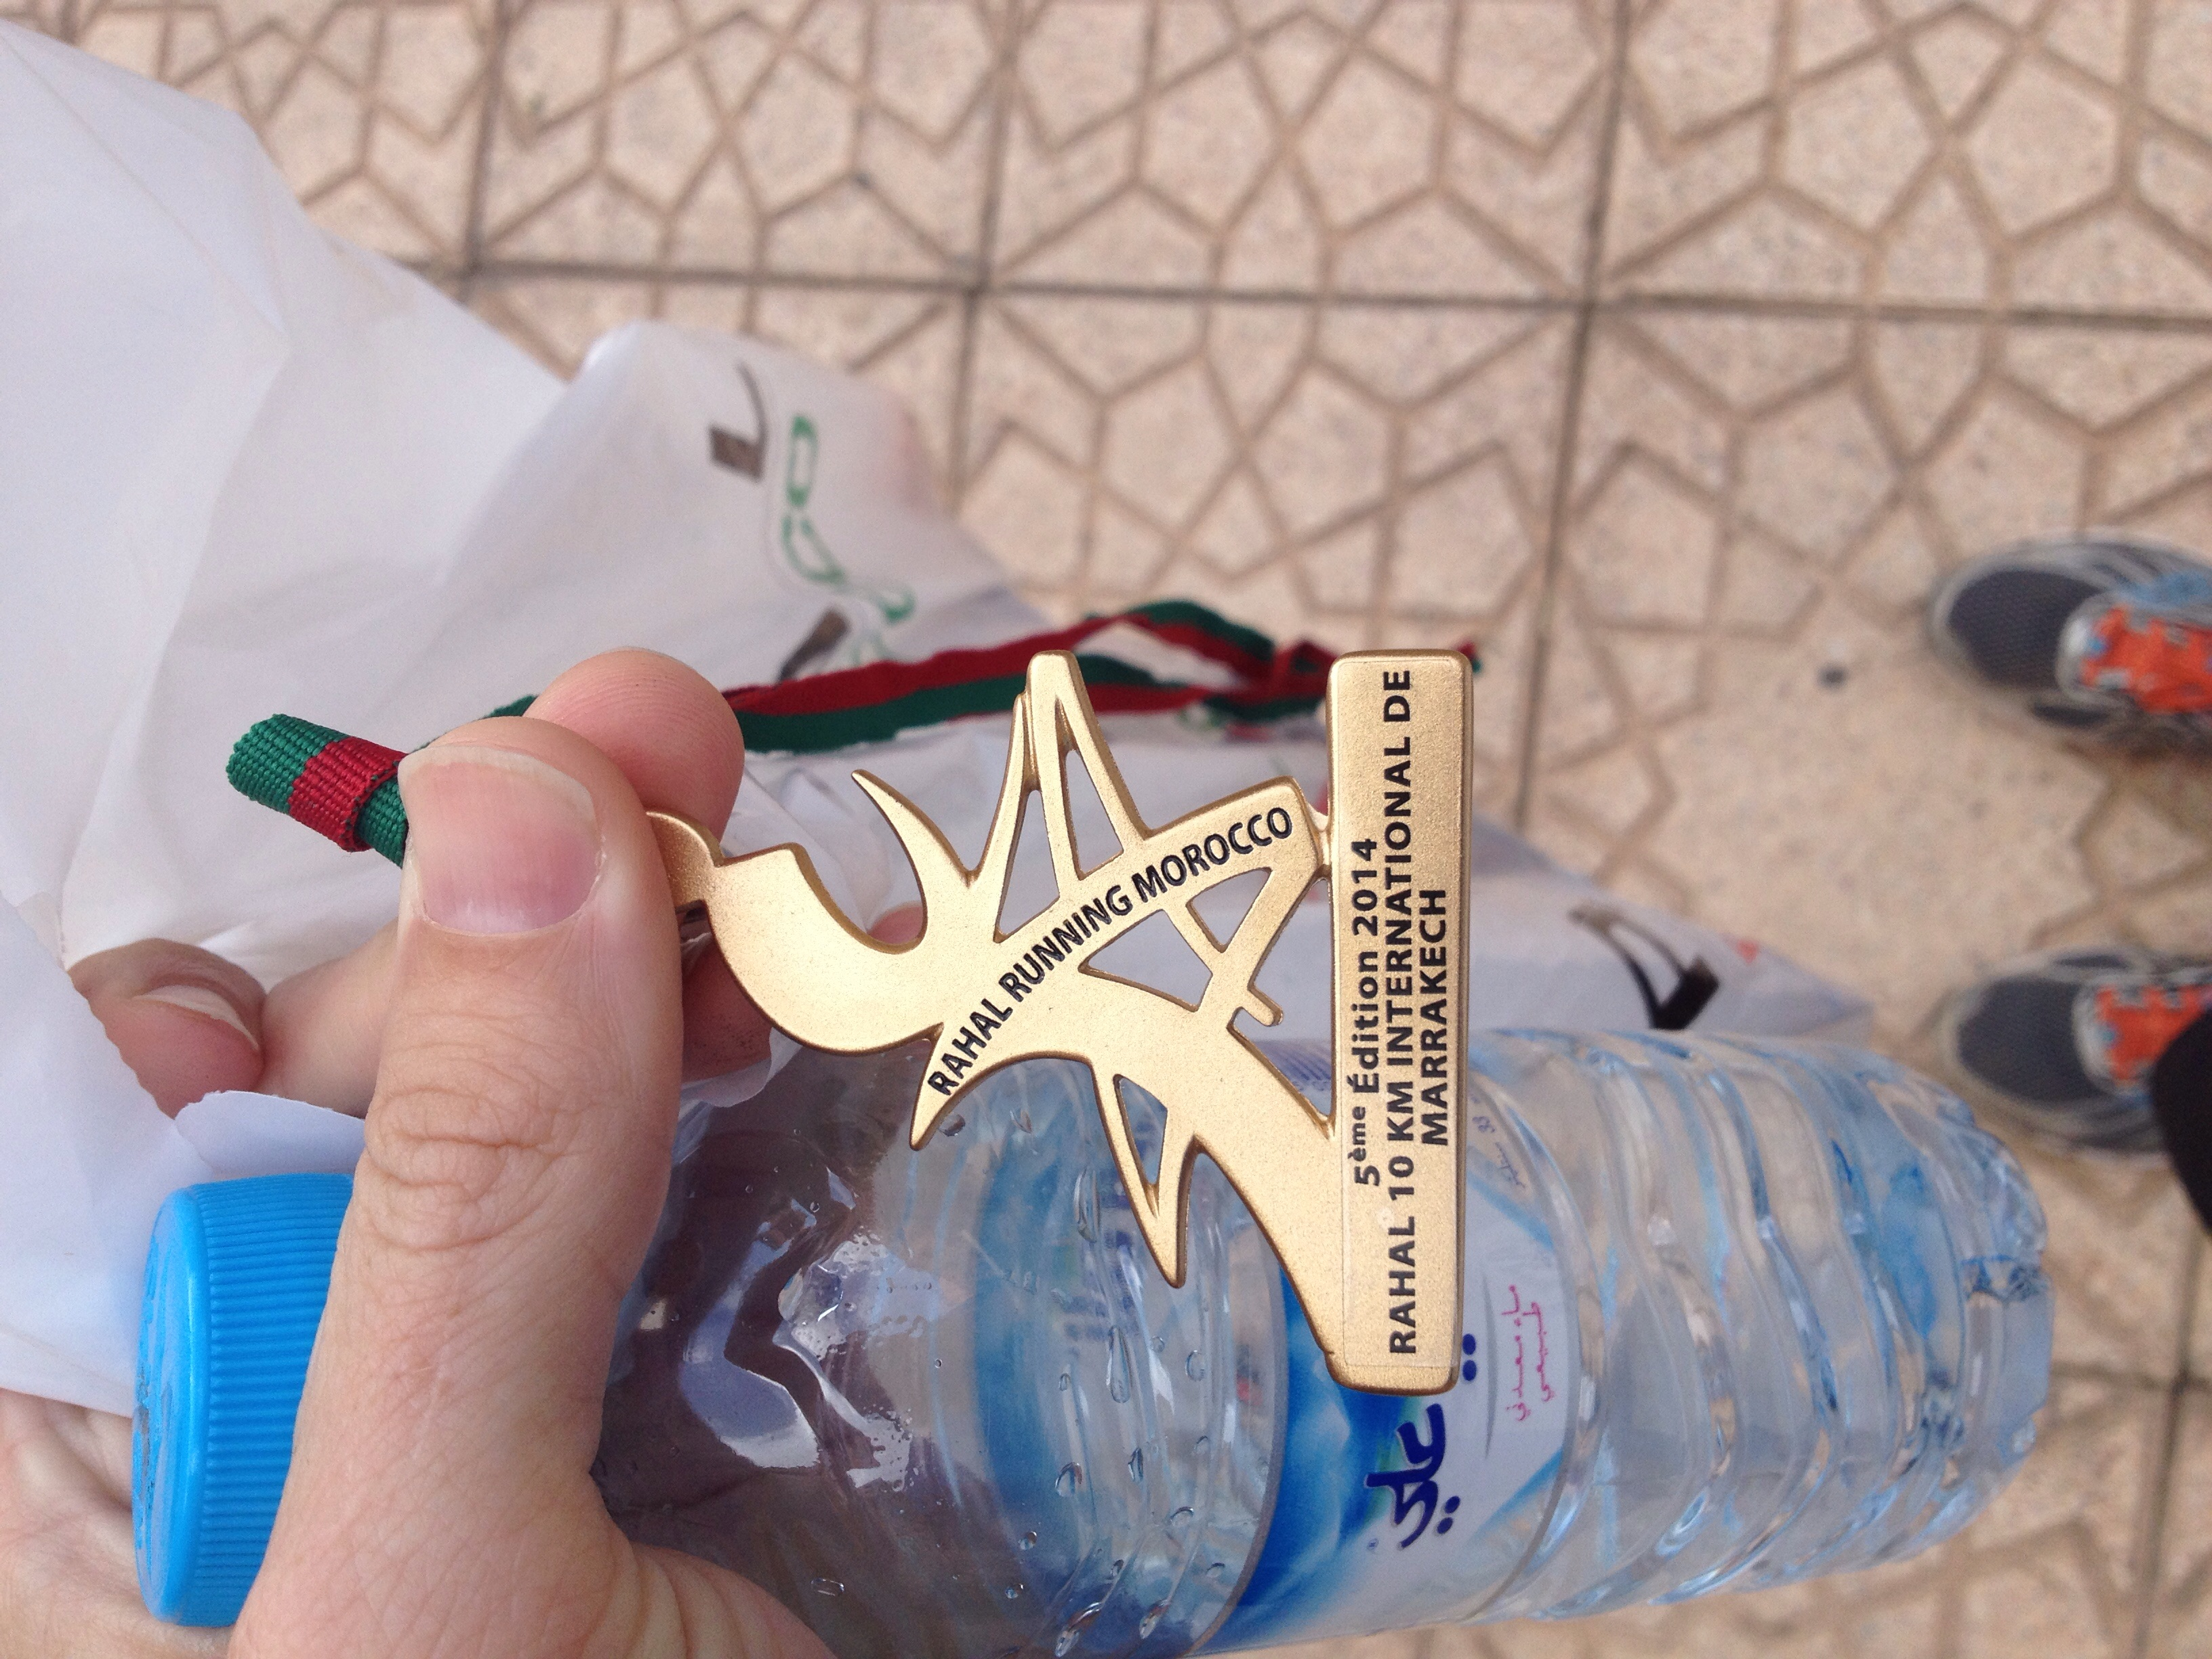 My finishers metal from the race